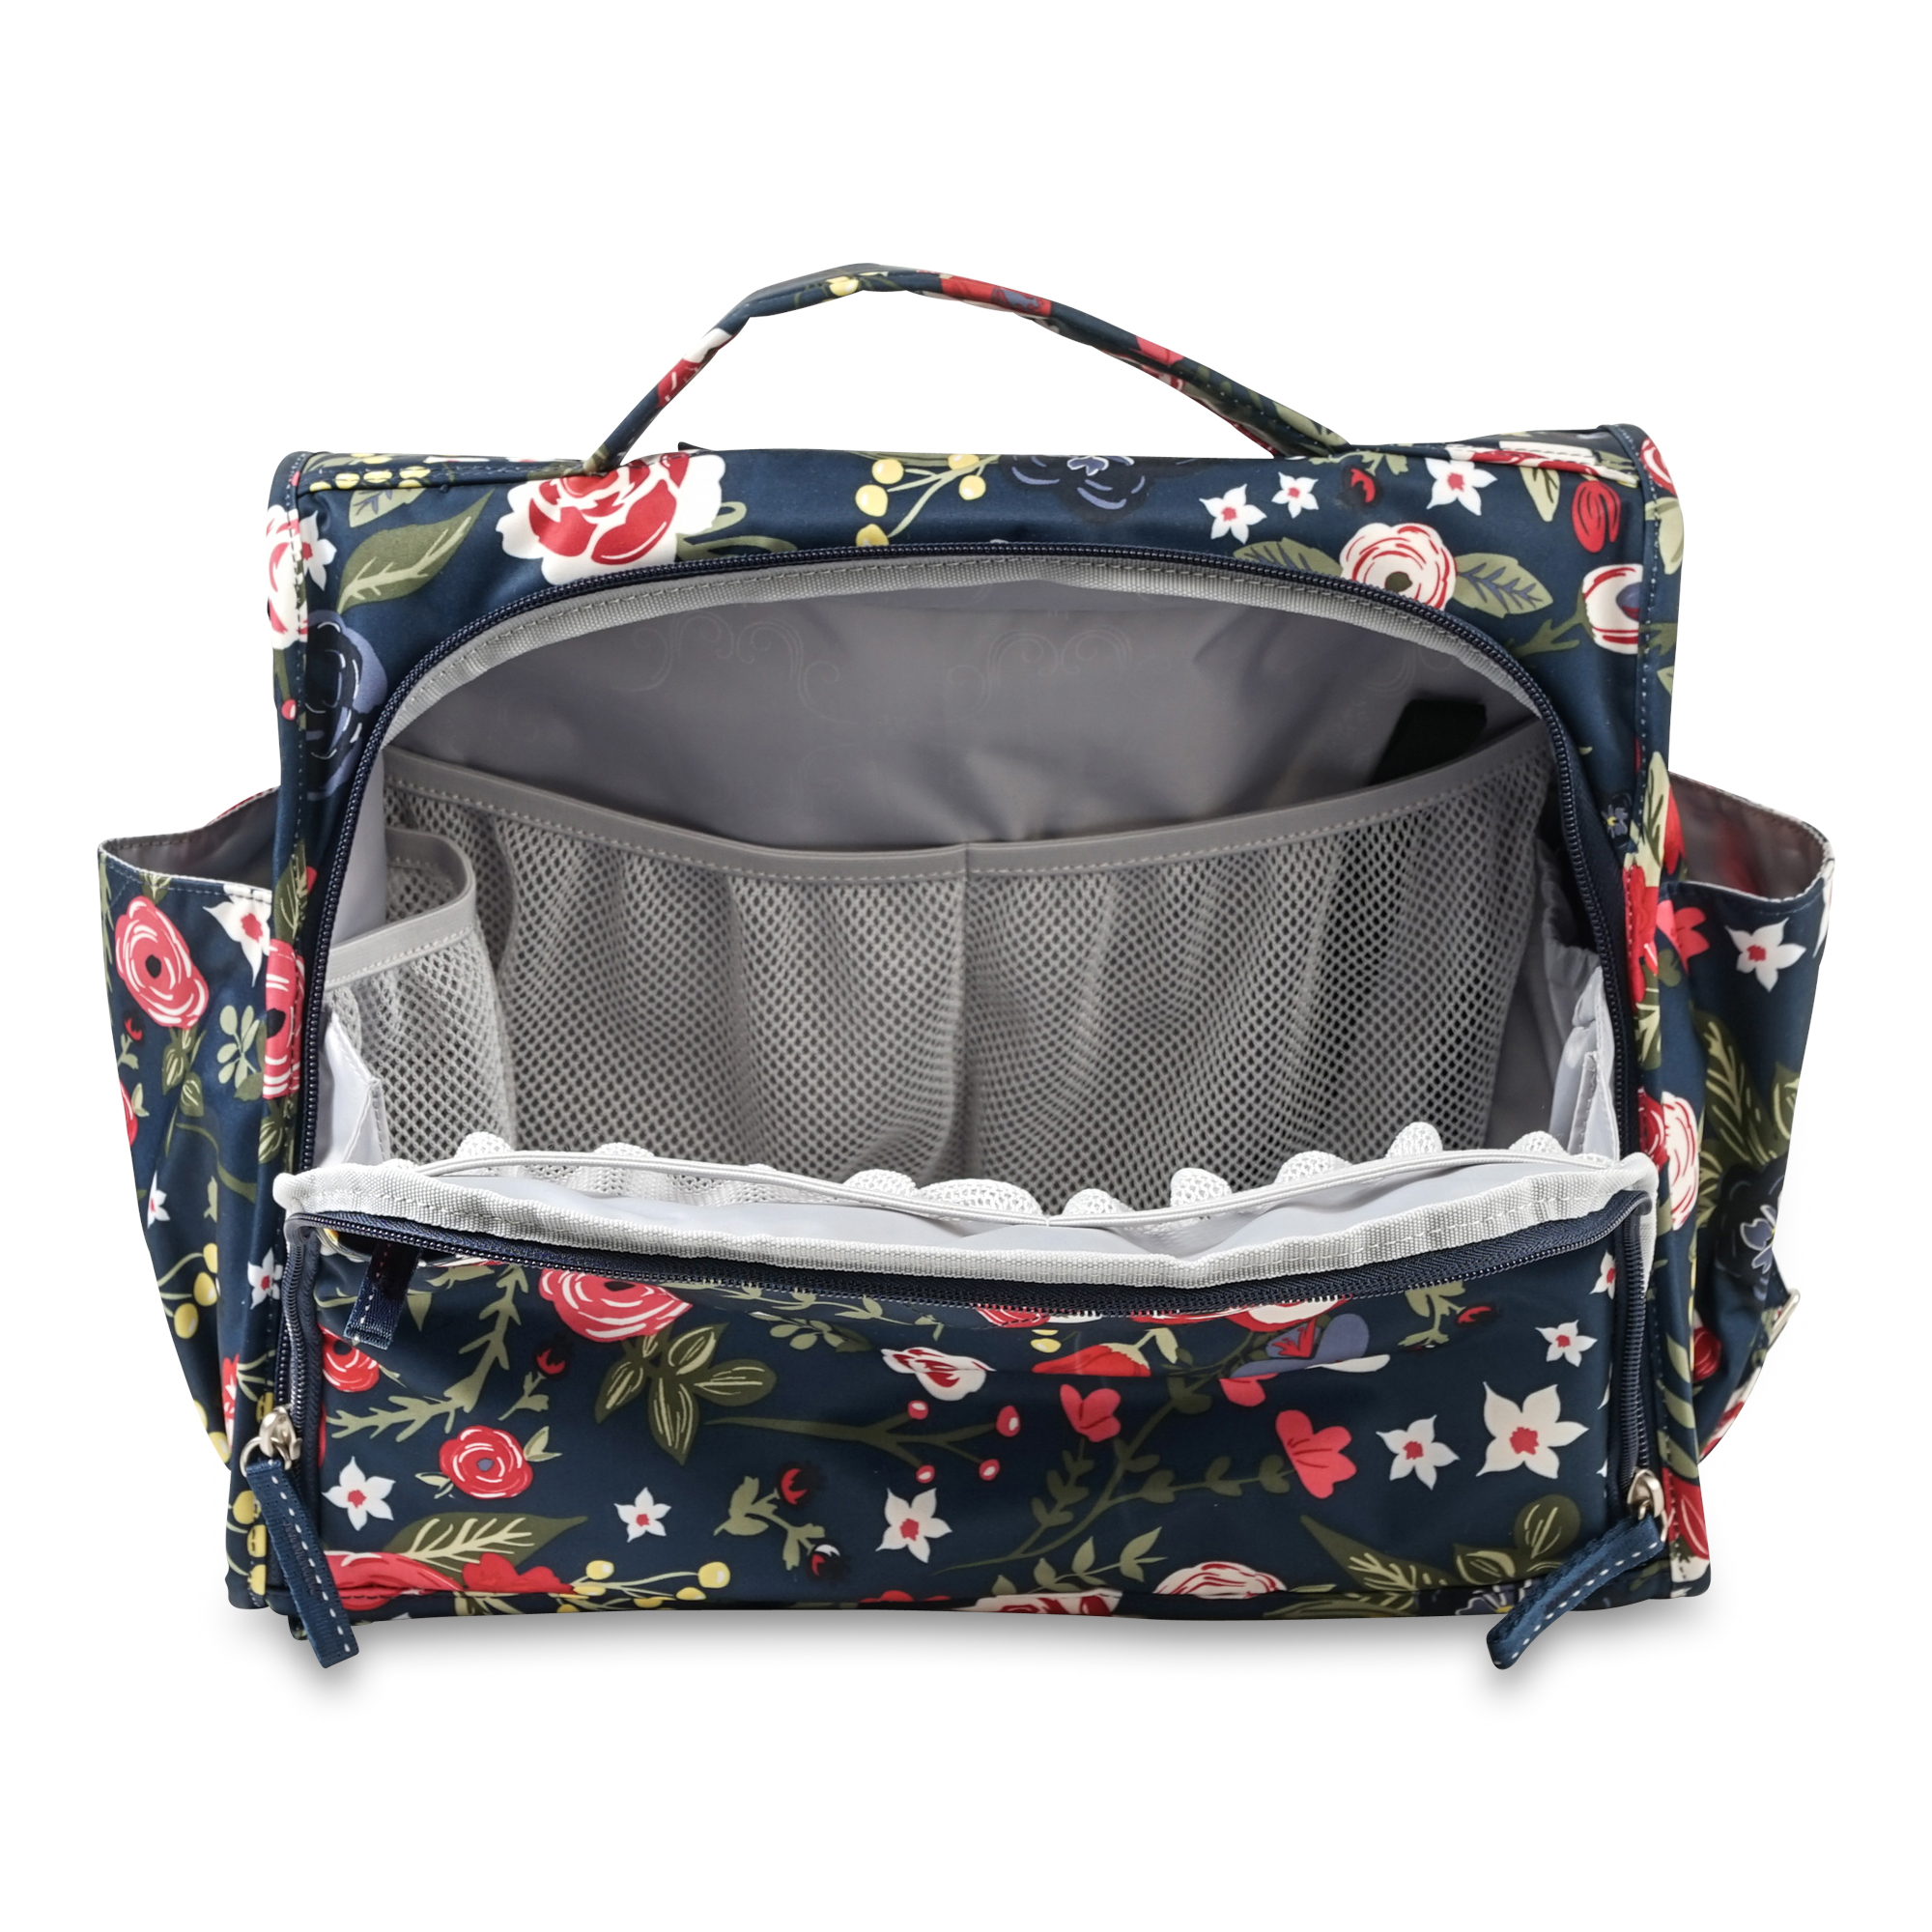 ju-ju-be-midnight-posy-classic-convertible-diaper-bag-4